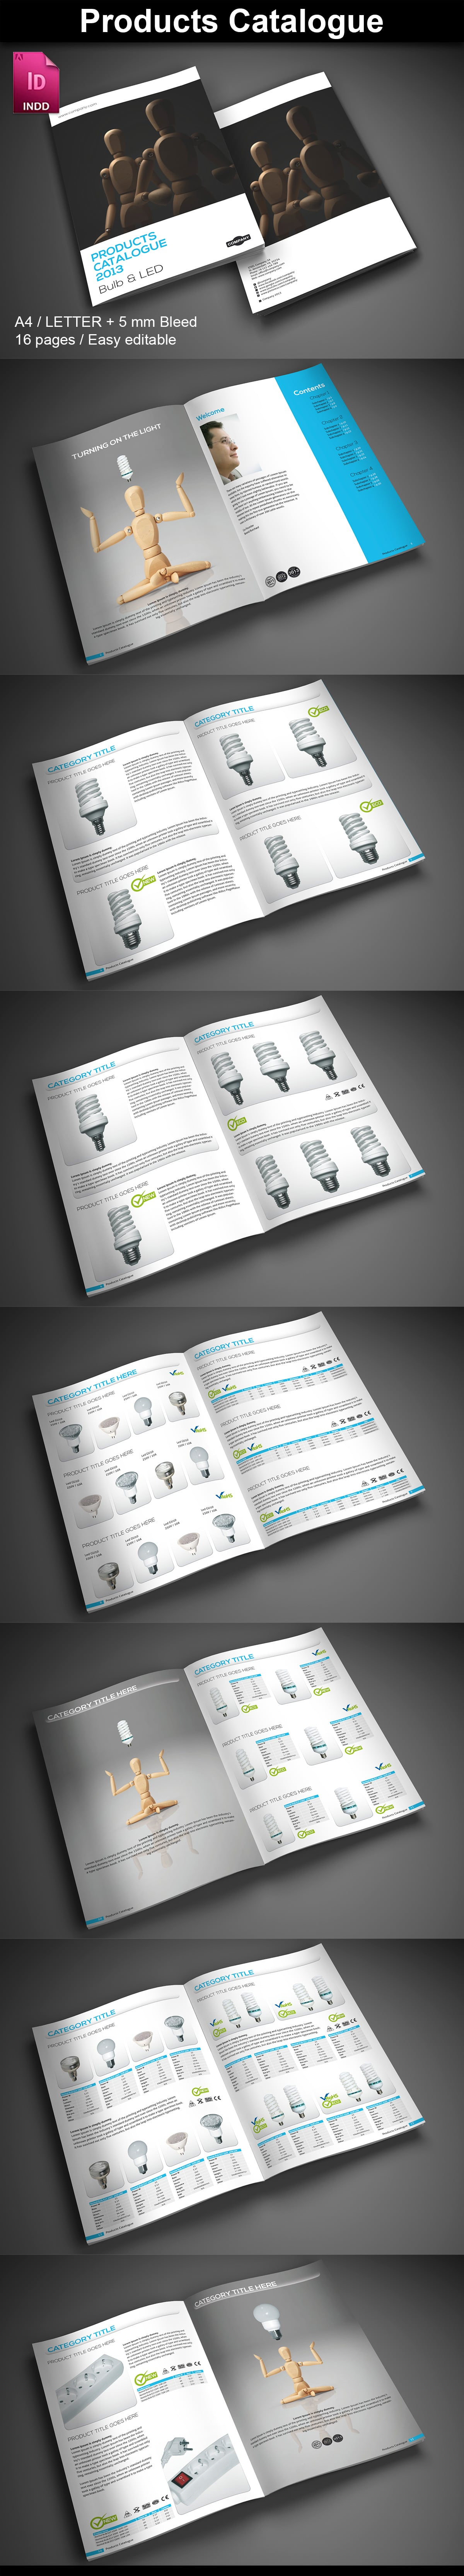 15  InDesign Product Catalogs - just $19 - 01 Products1 ImagePreview